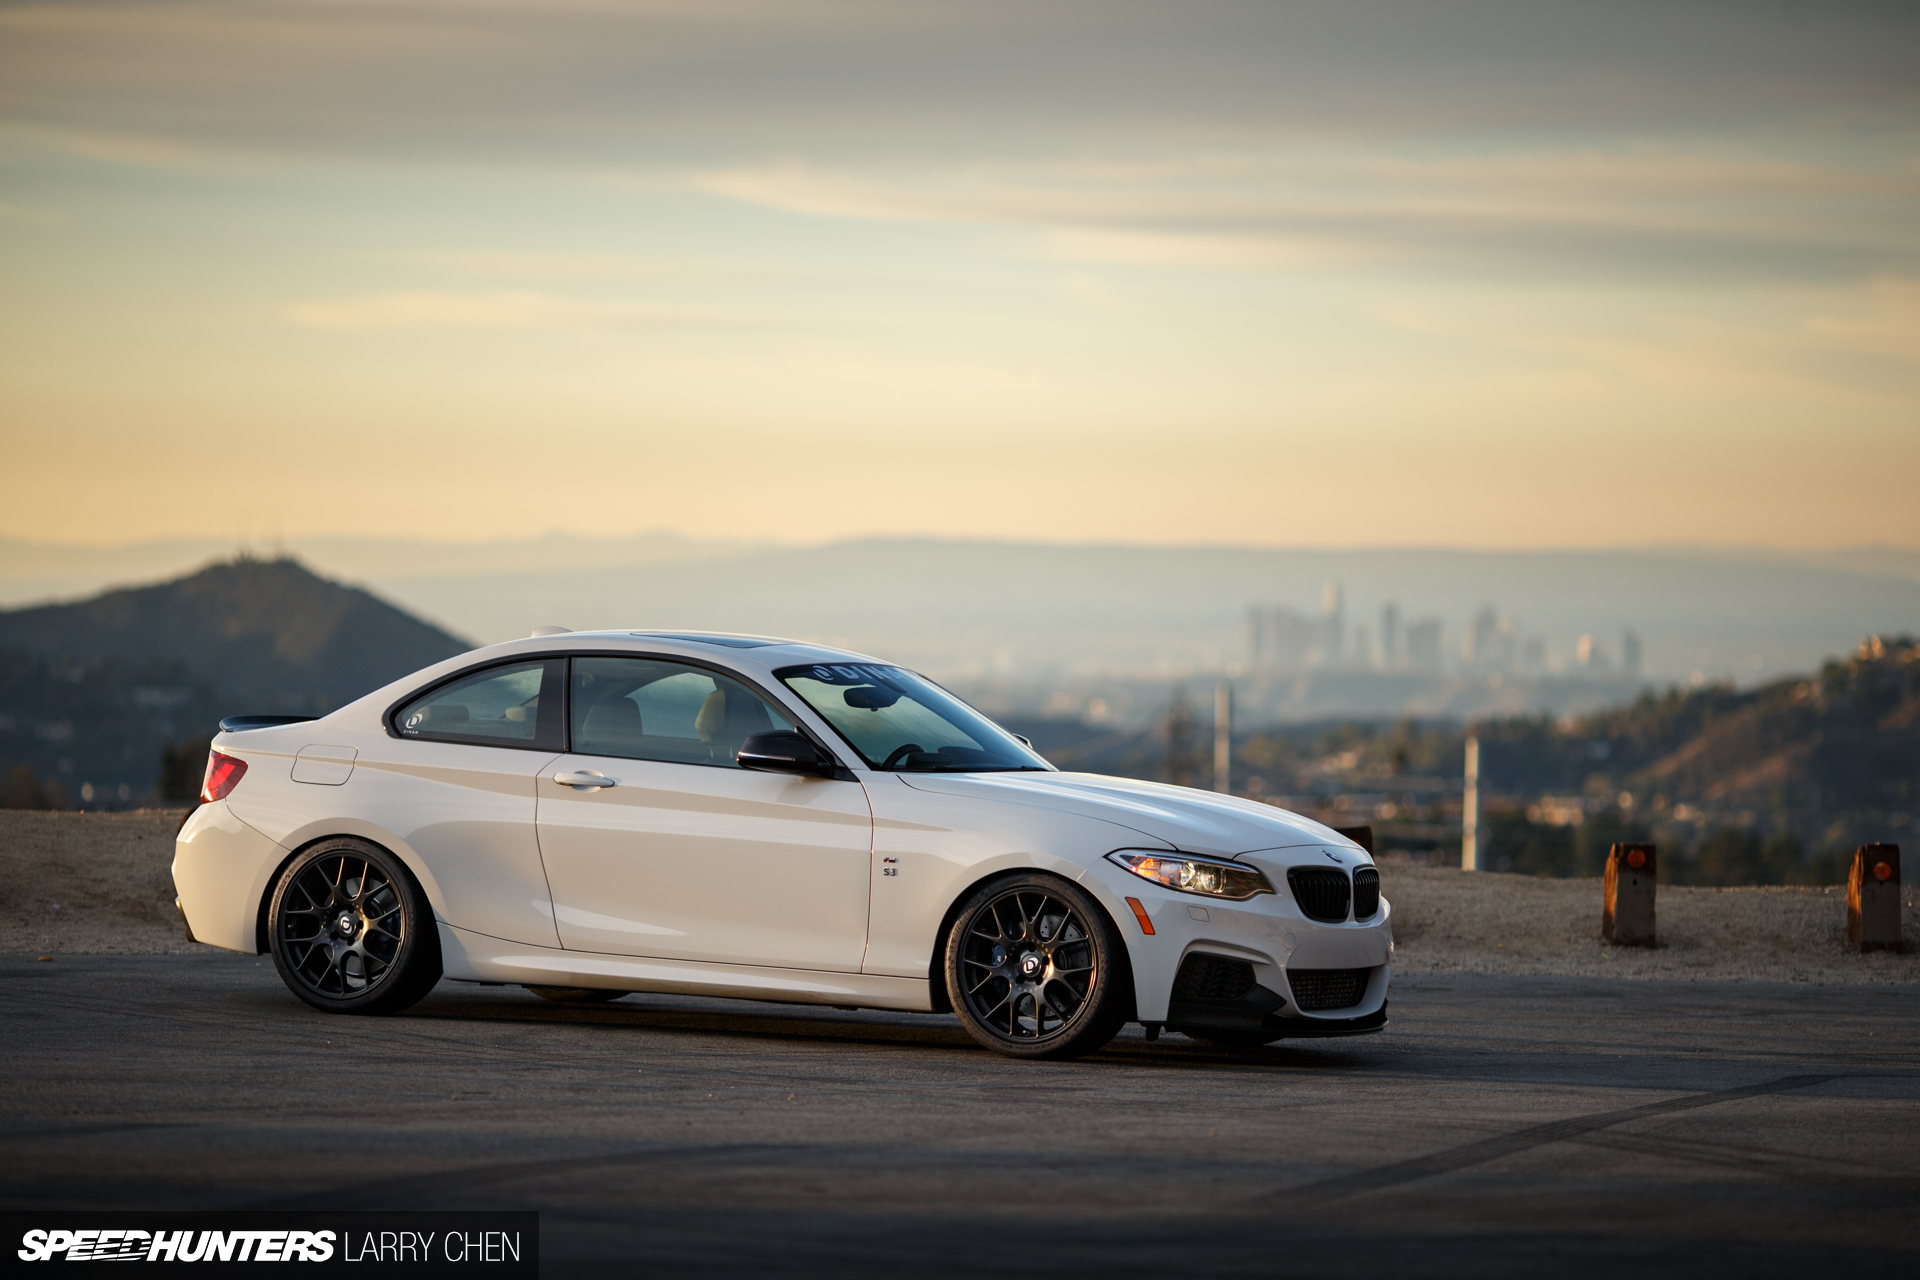 Shifting Into Warp Speed The Dinan M235i Speedhunters